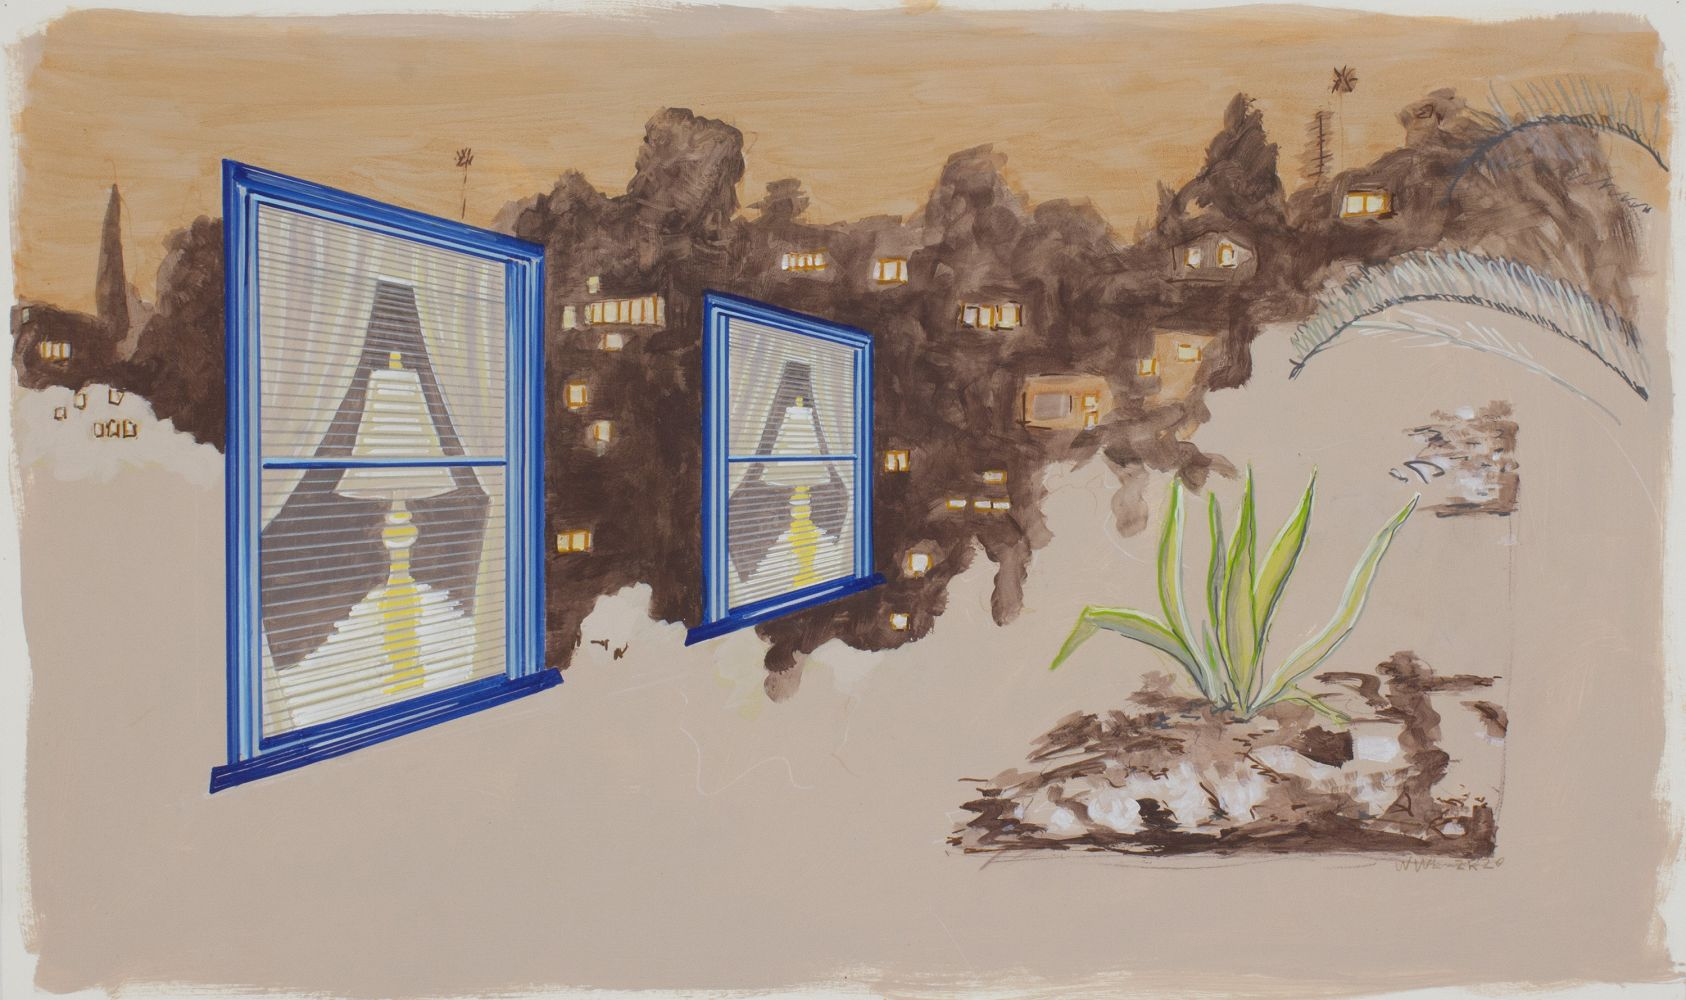 William Leavitt, Receding Windows, Agave, 2020